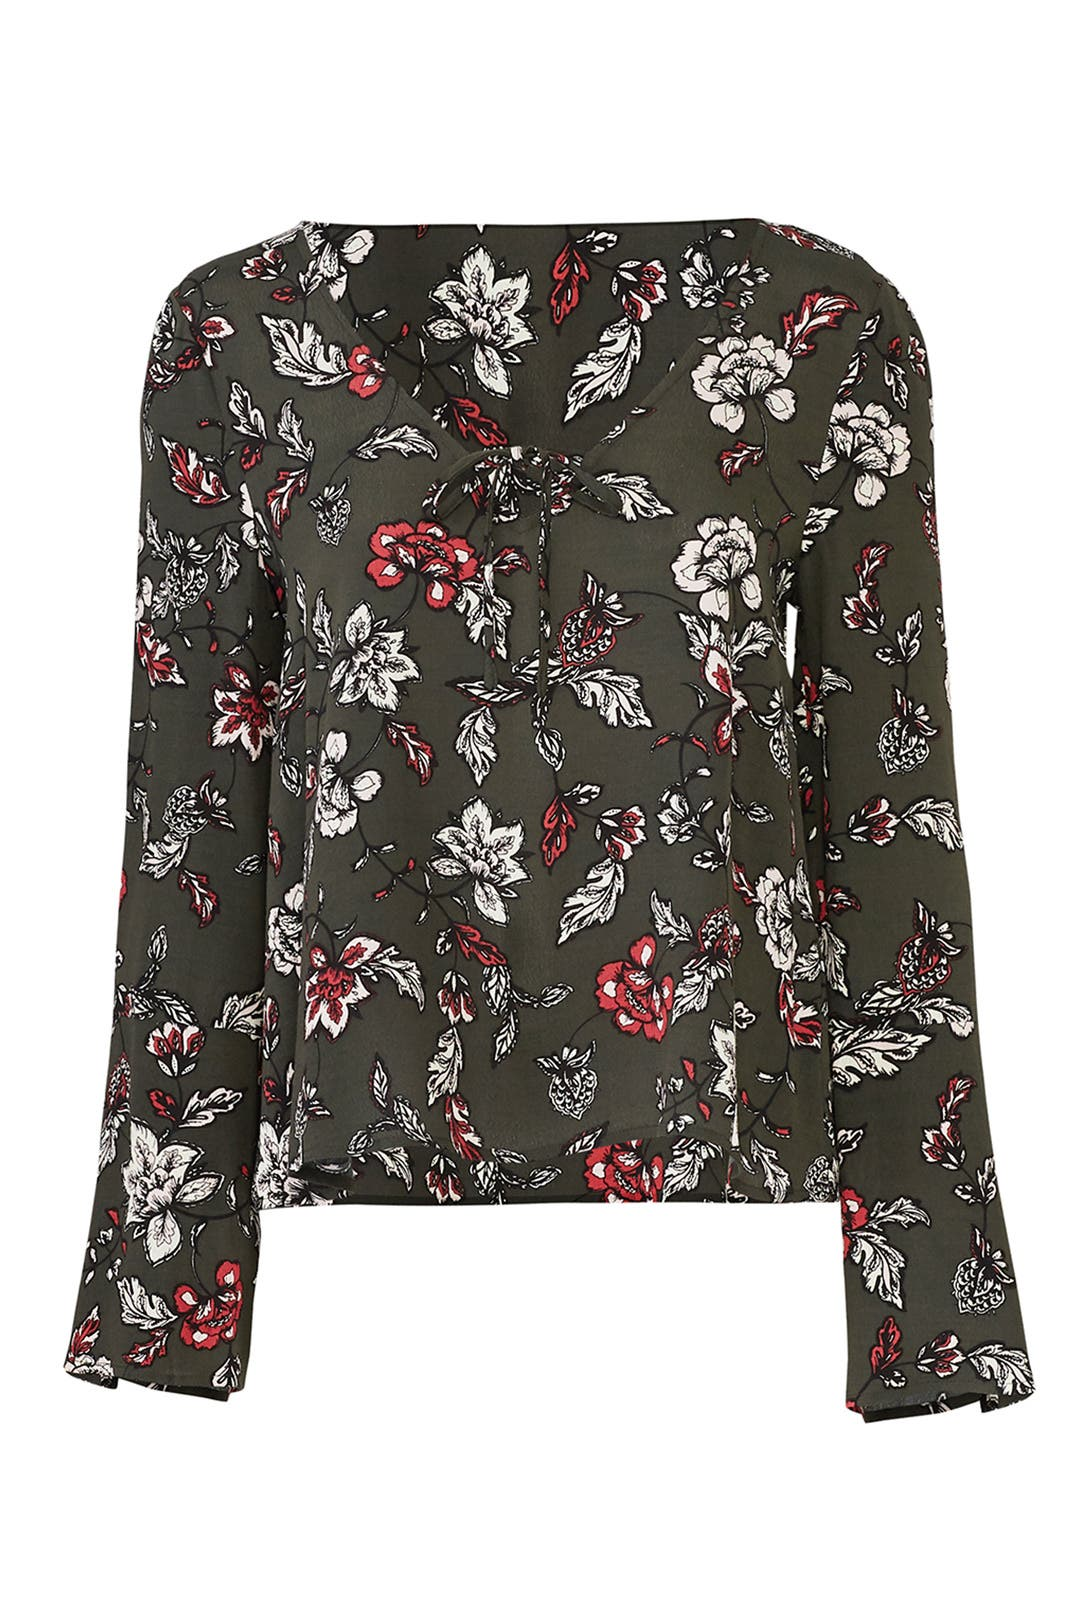 17a0c787c7fe Floral Jantel Blouse by cupcakes and cashmere for  30